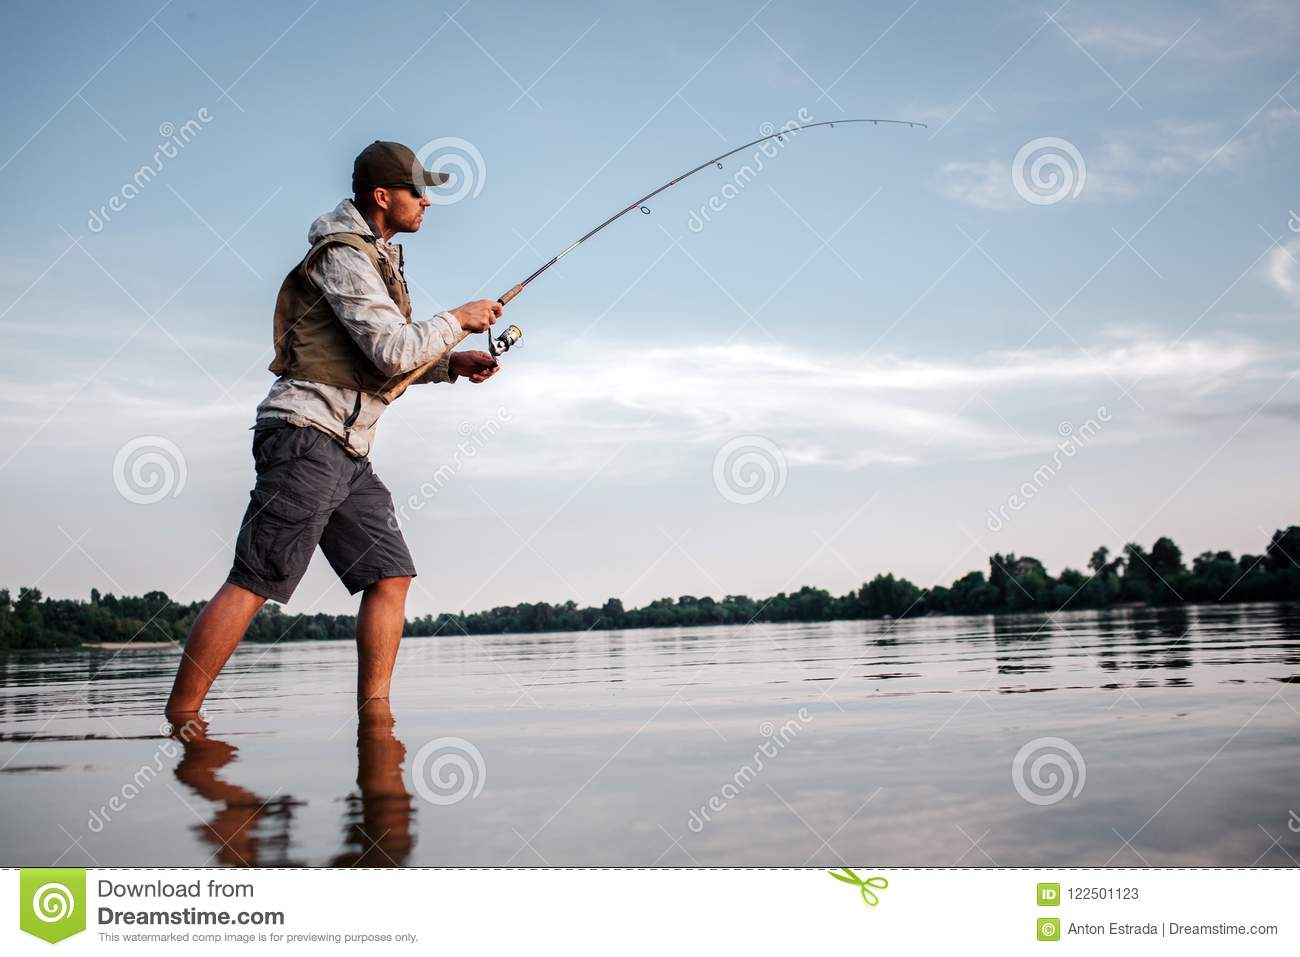 Active man is standing in shallow and fishing. He holds fly rod in hands. Man is twisting around reel to make spoon